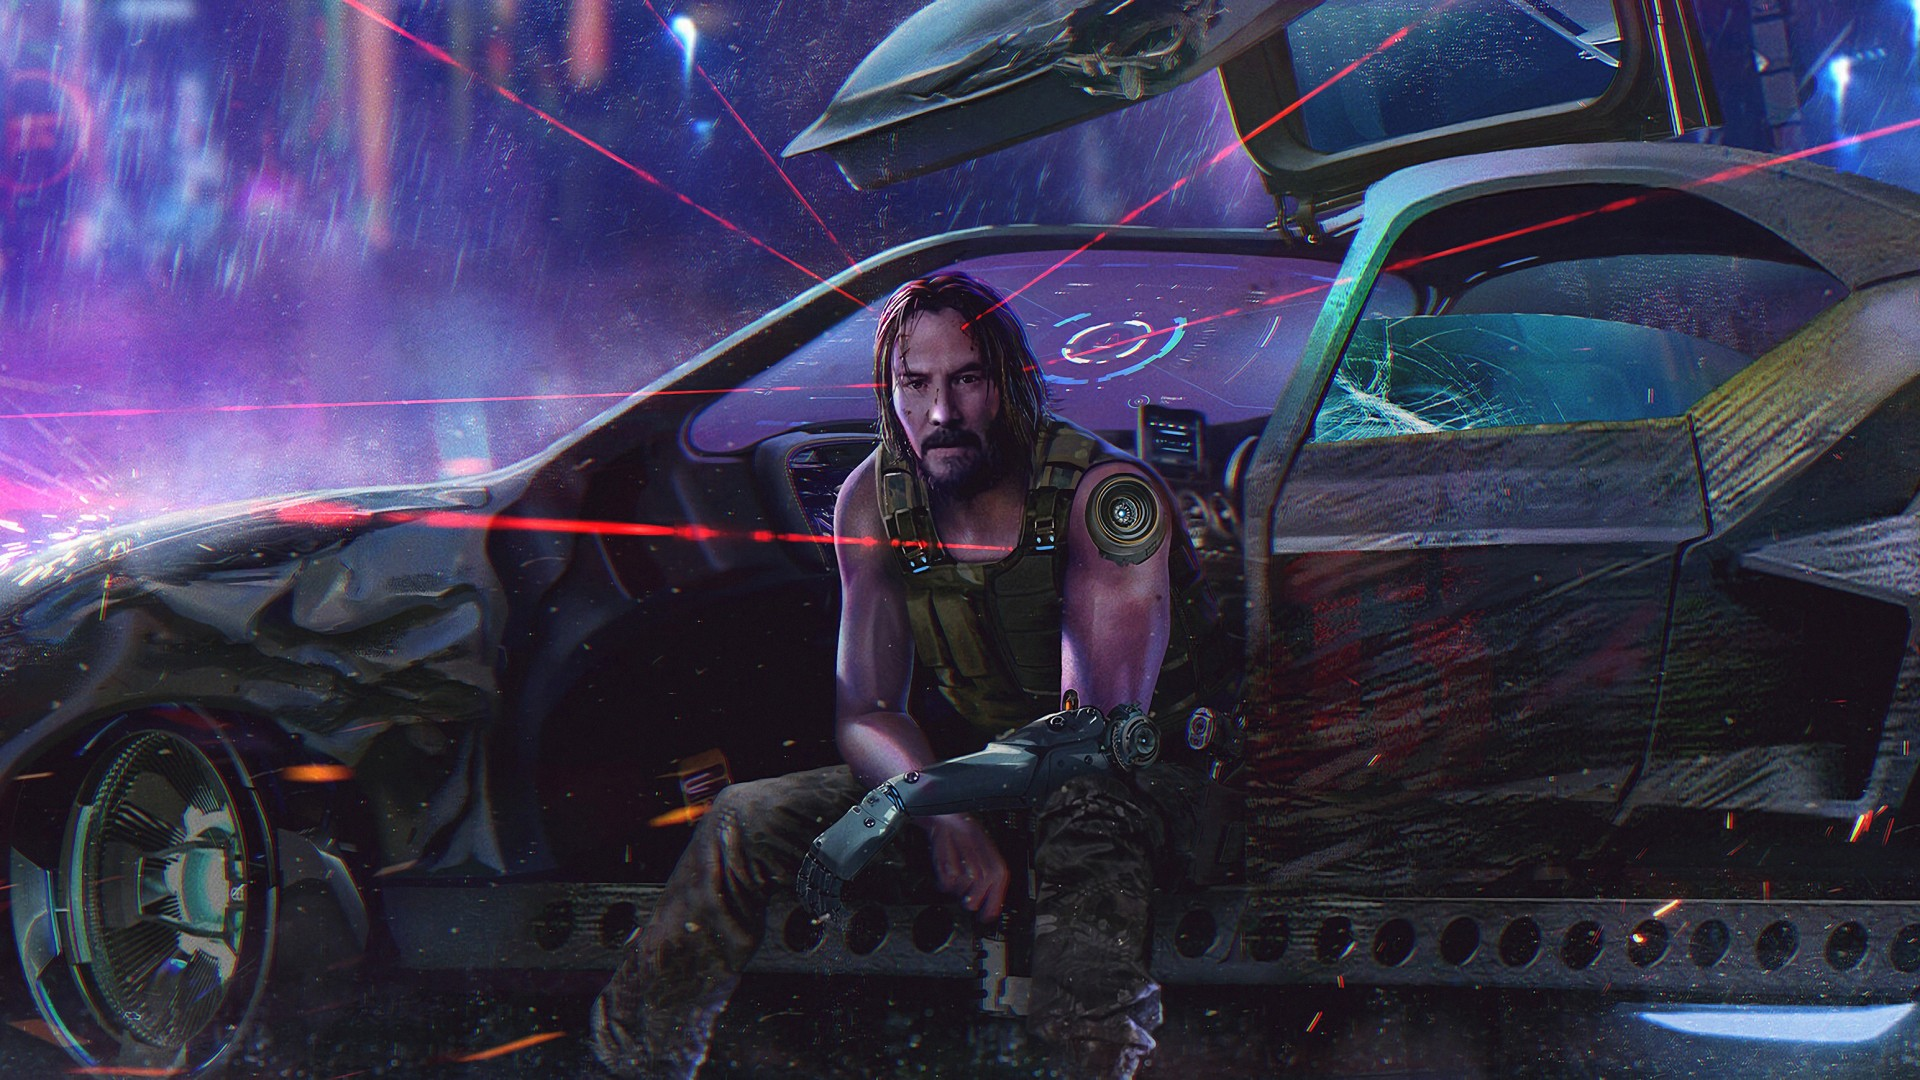 Cyberpunk 2077 Poster Picture